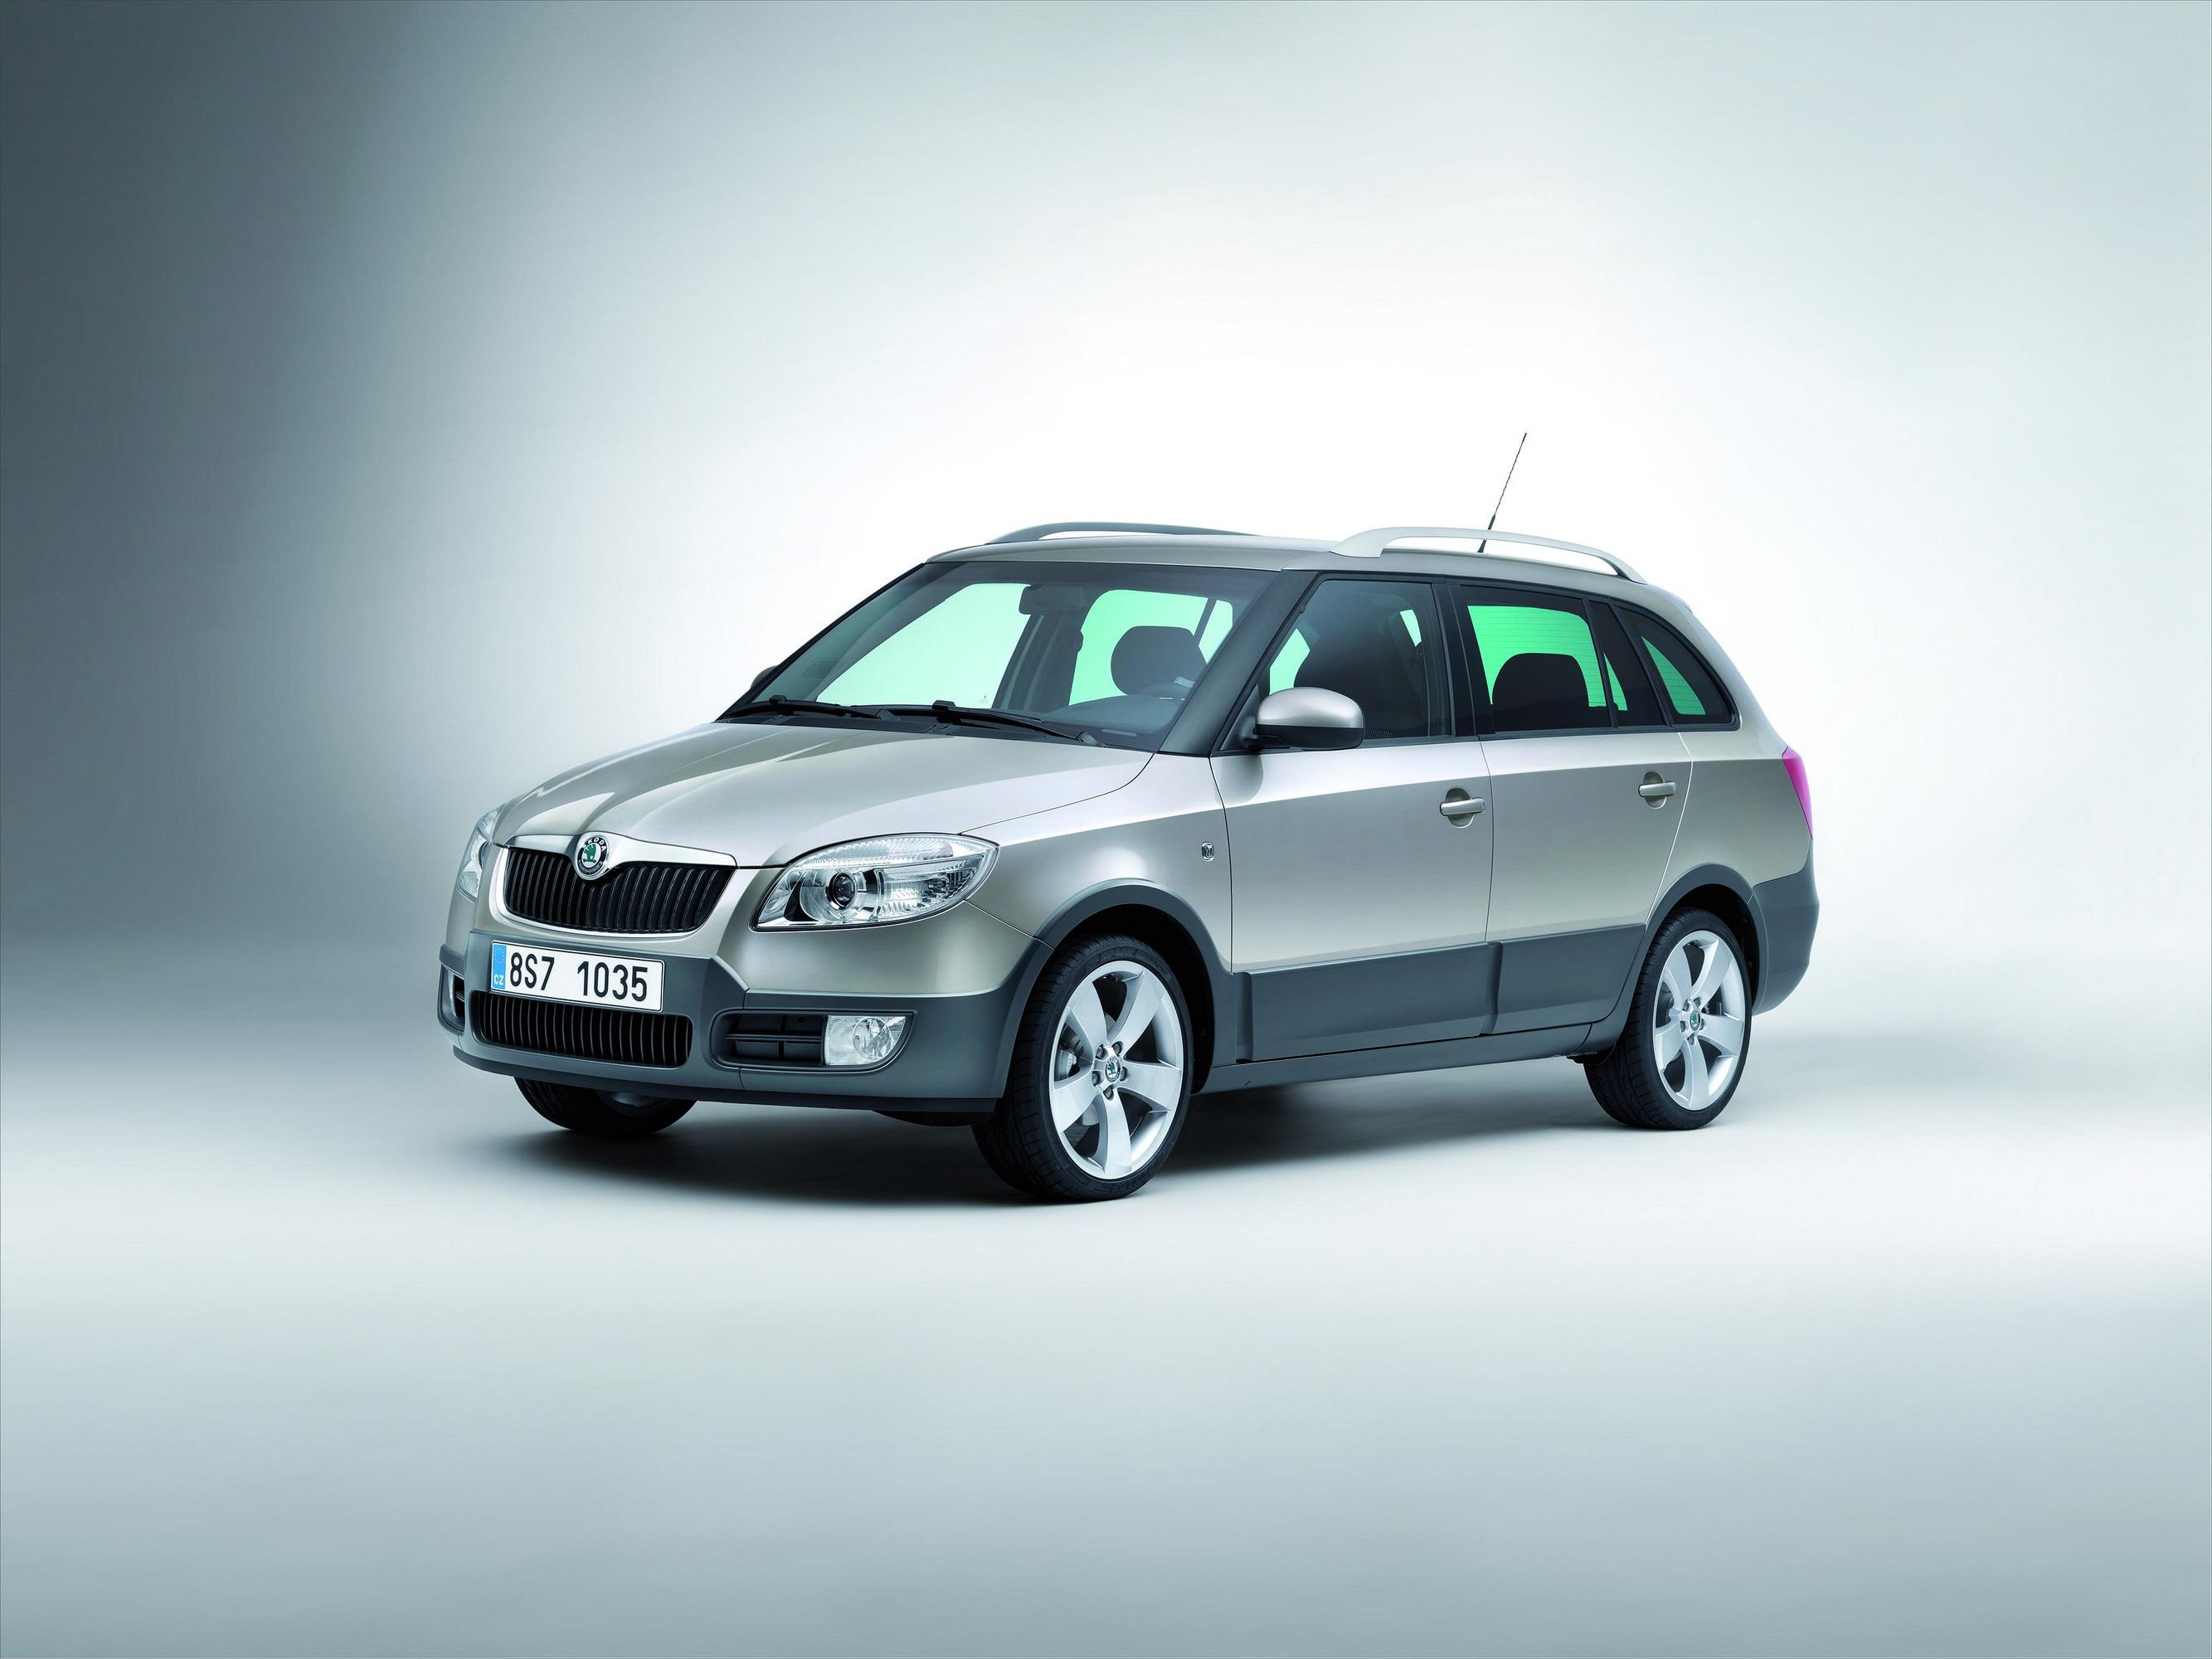 2009 skoda fabia scout review top speed. Black Bedroom Furniture Sets. Home Design Ideas